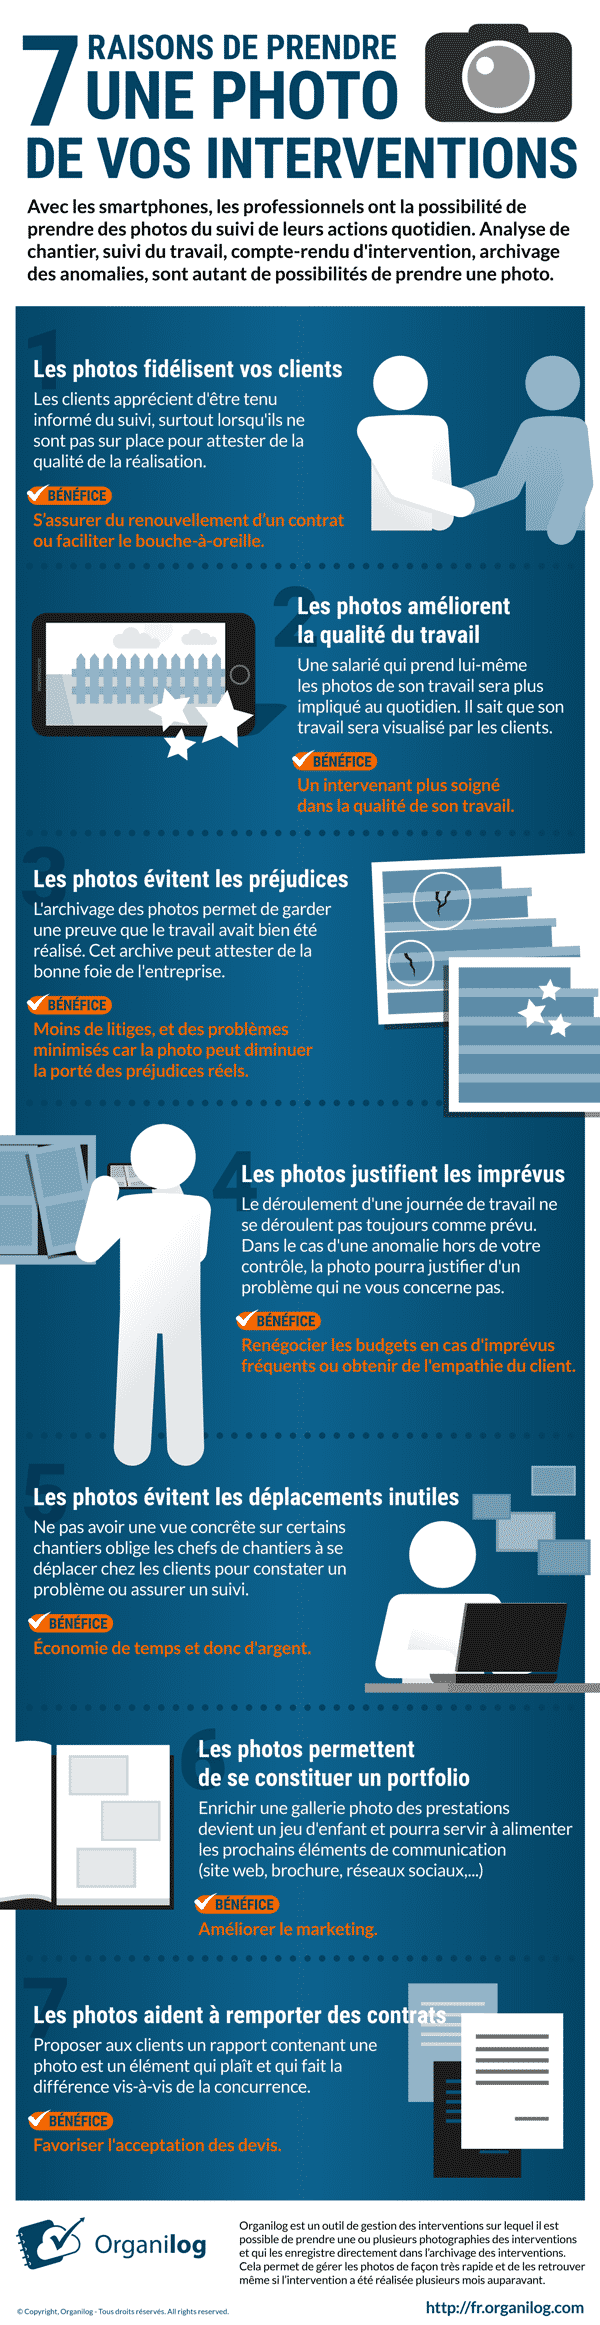 Infographie : 7 raisons de prendre une photo de vos interventions